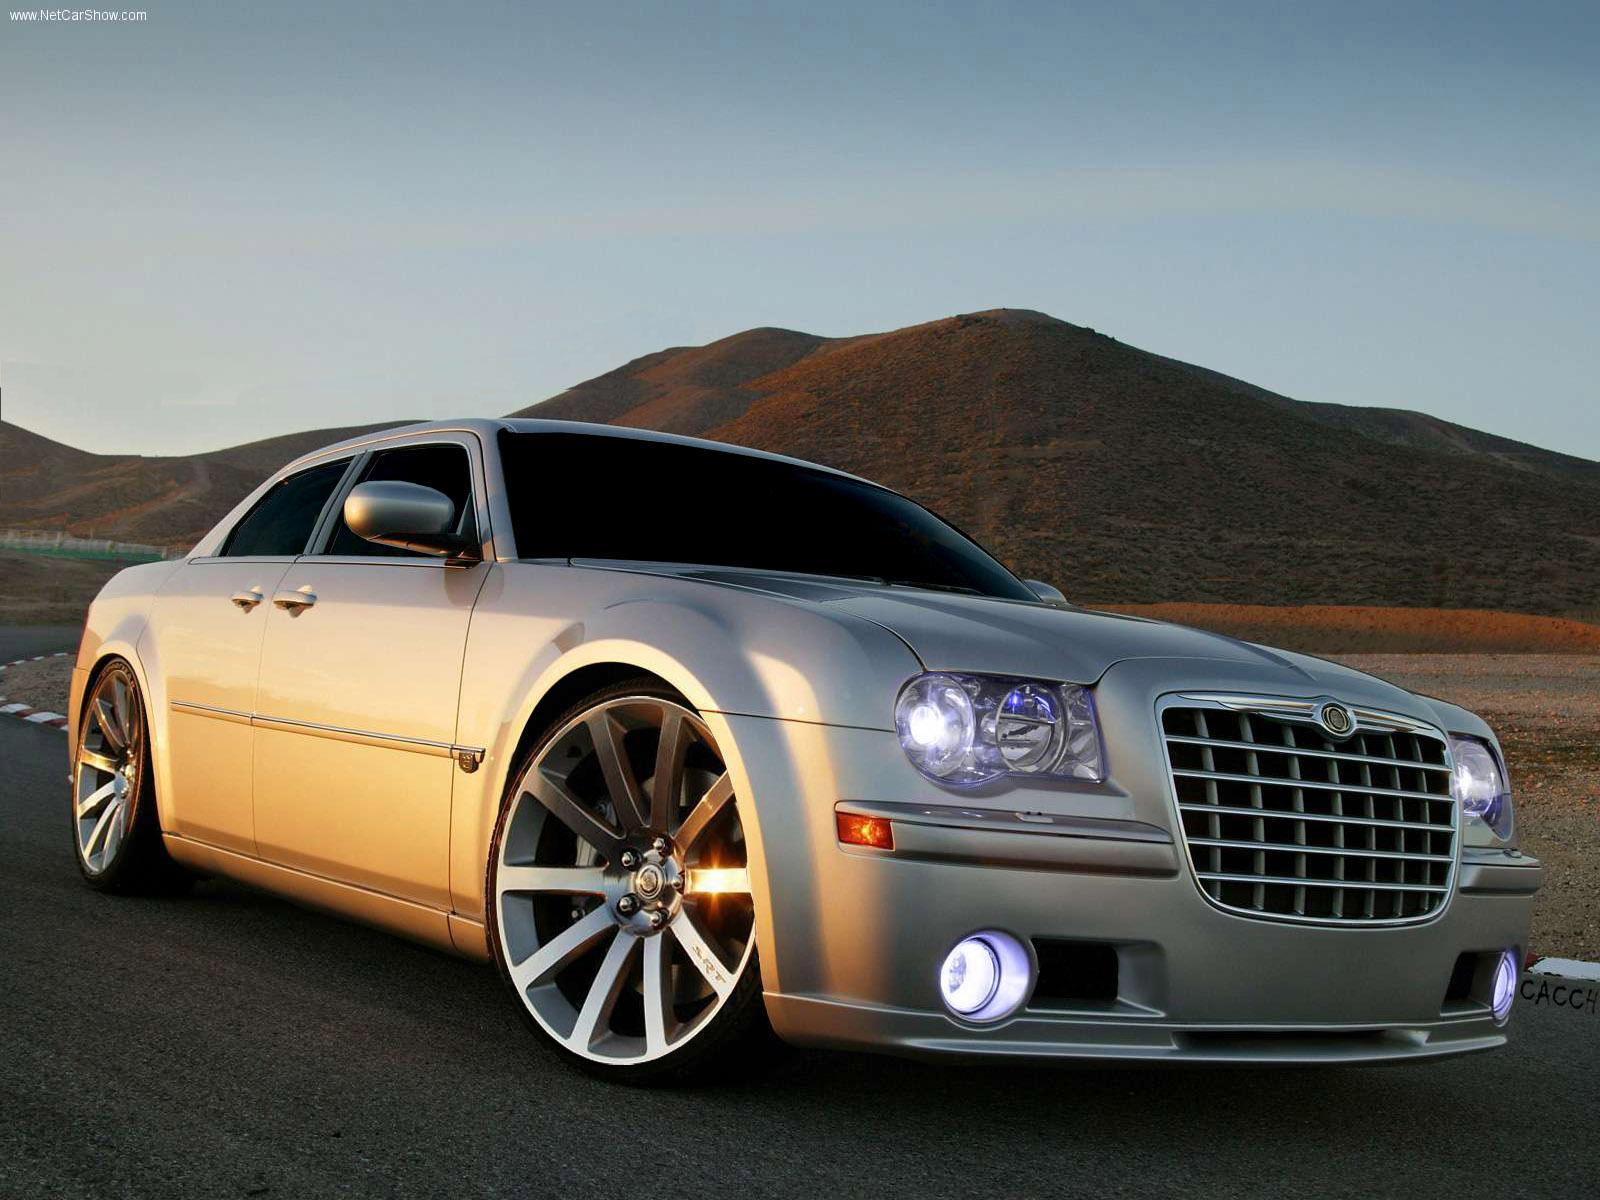 Chrysler 300 SRT8 Wallpapers and Background Images - stmed.net